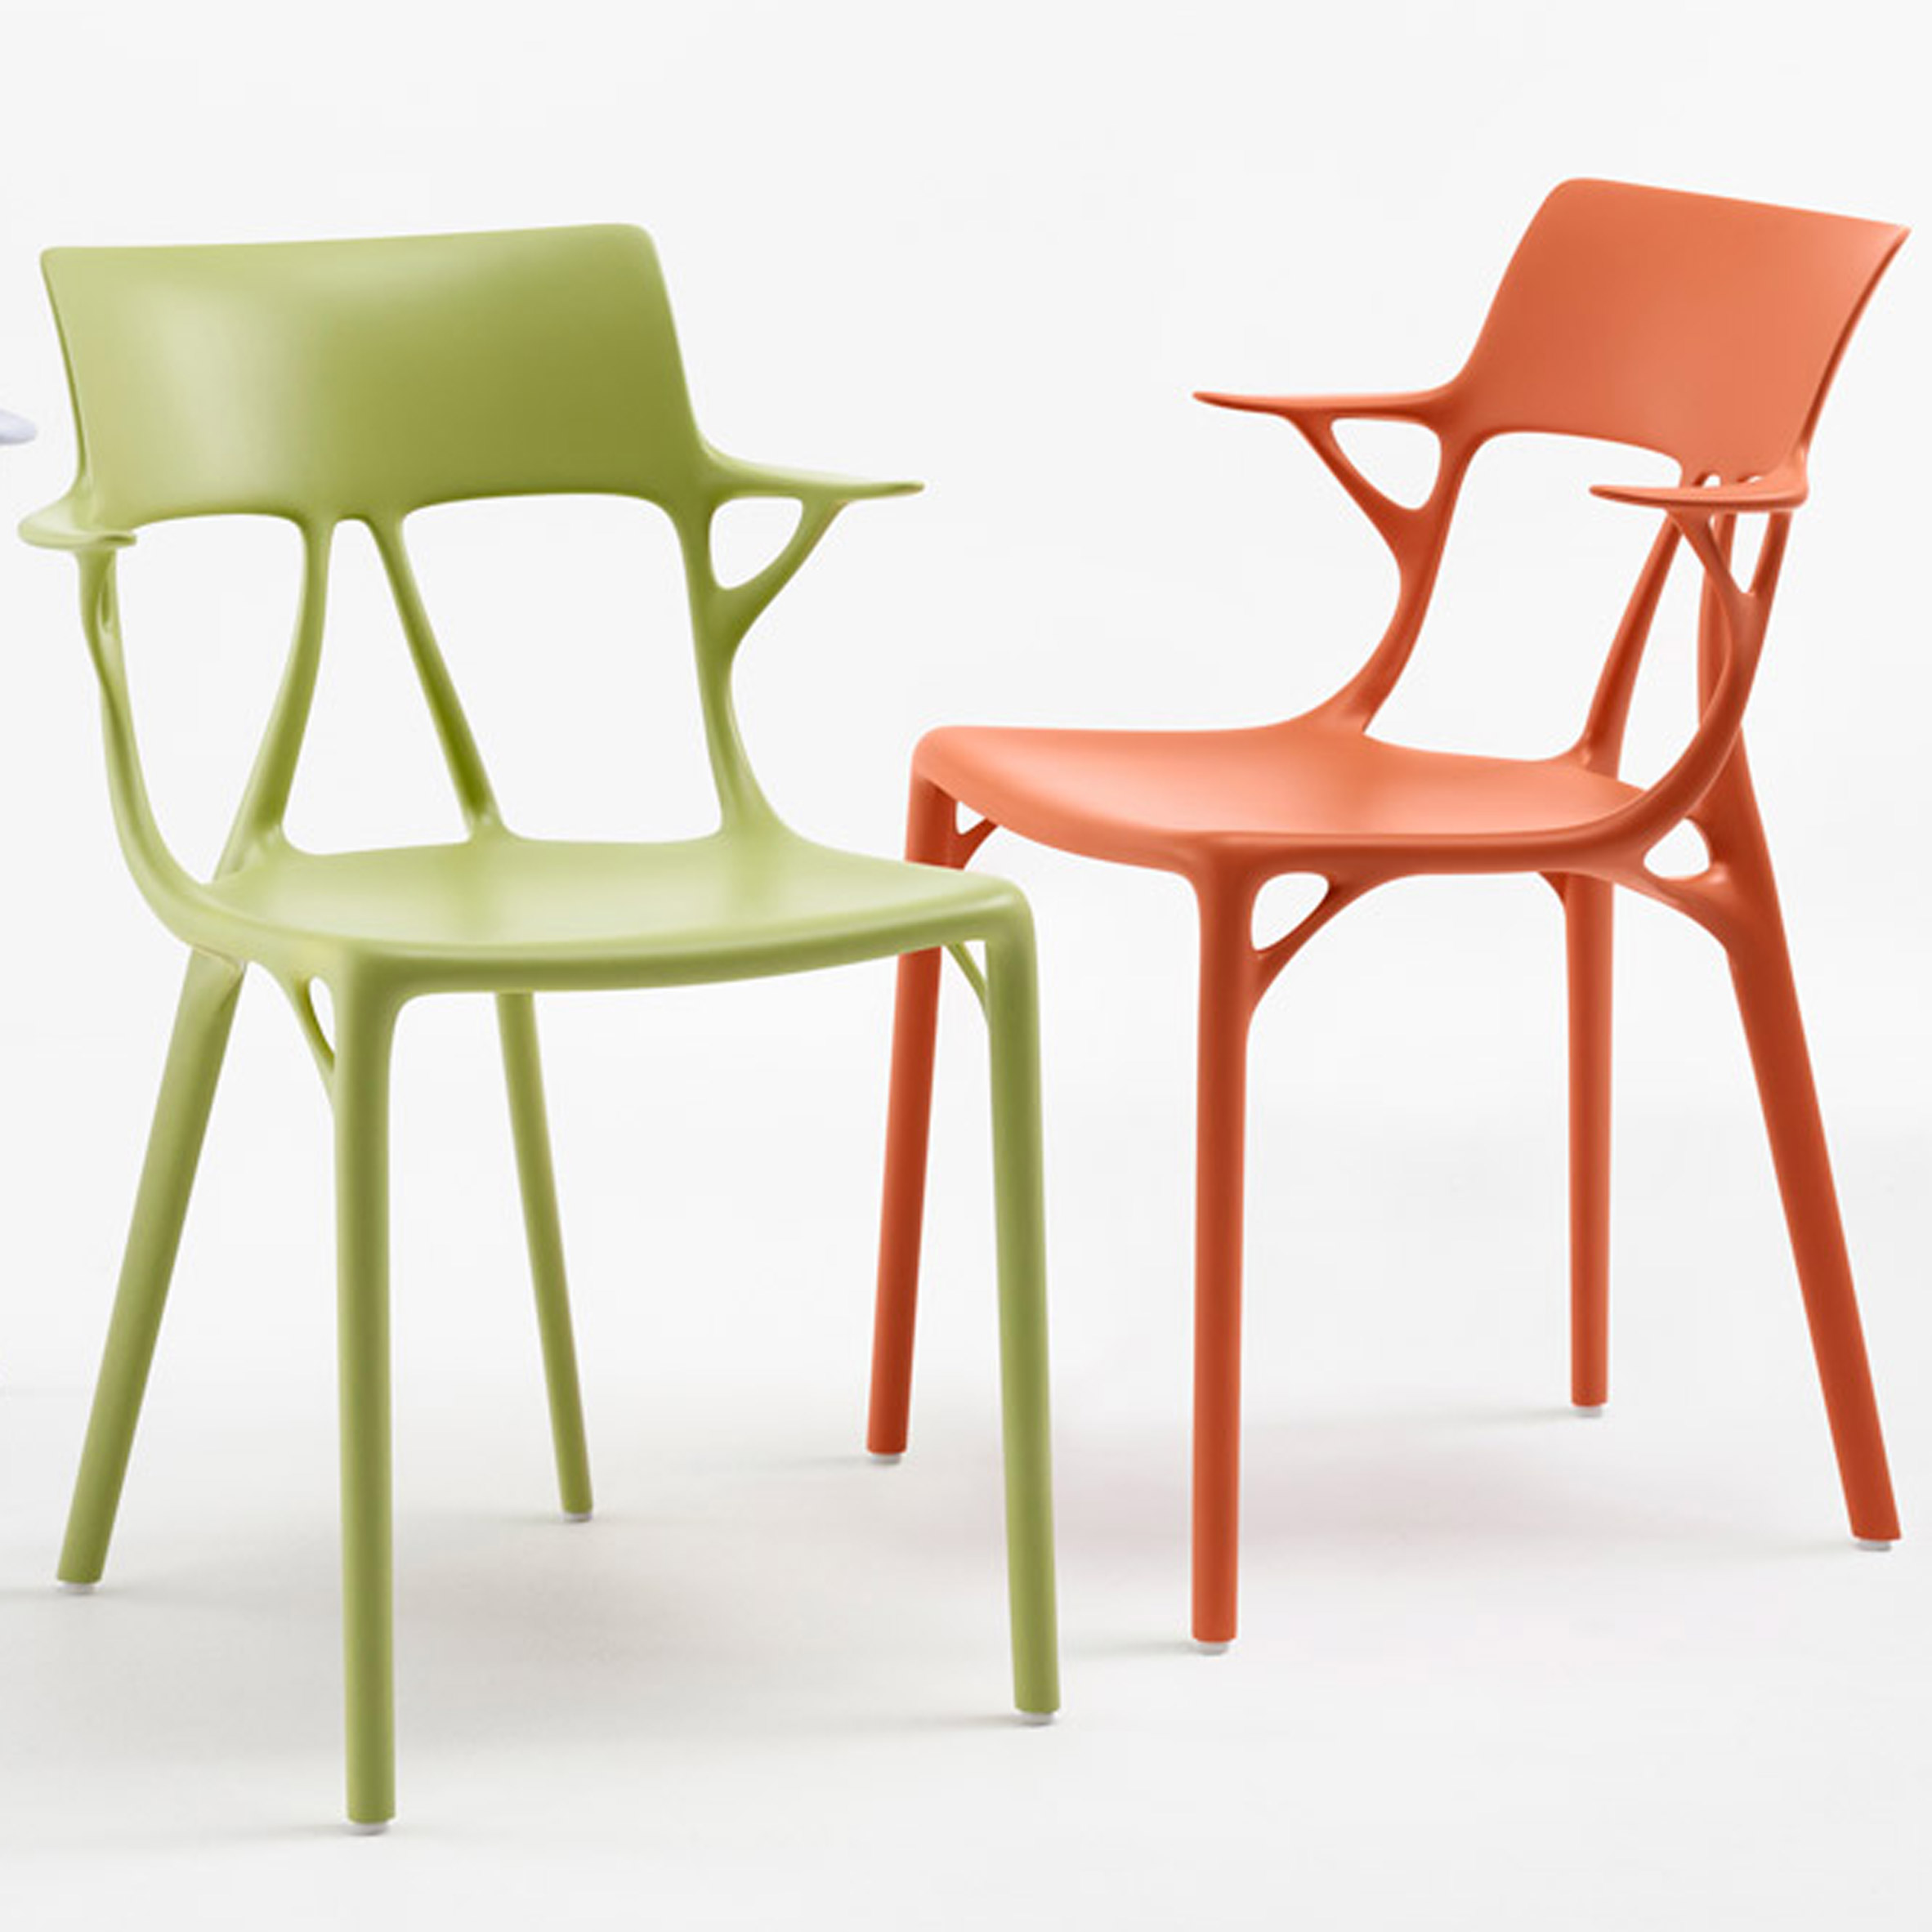 Philippe Starck Design Stoelen.Philippe Starck S A I Chair Is First Chair Designed With